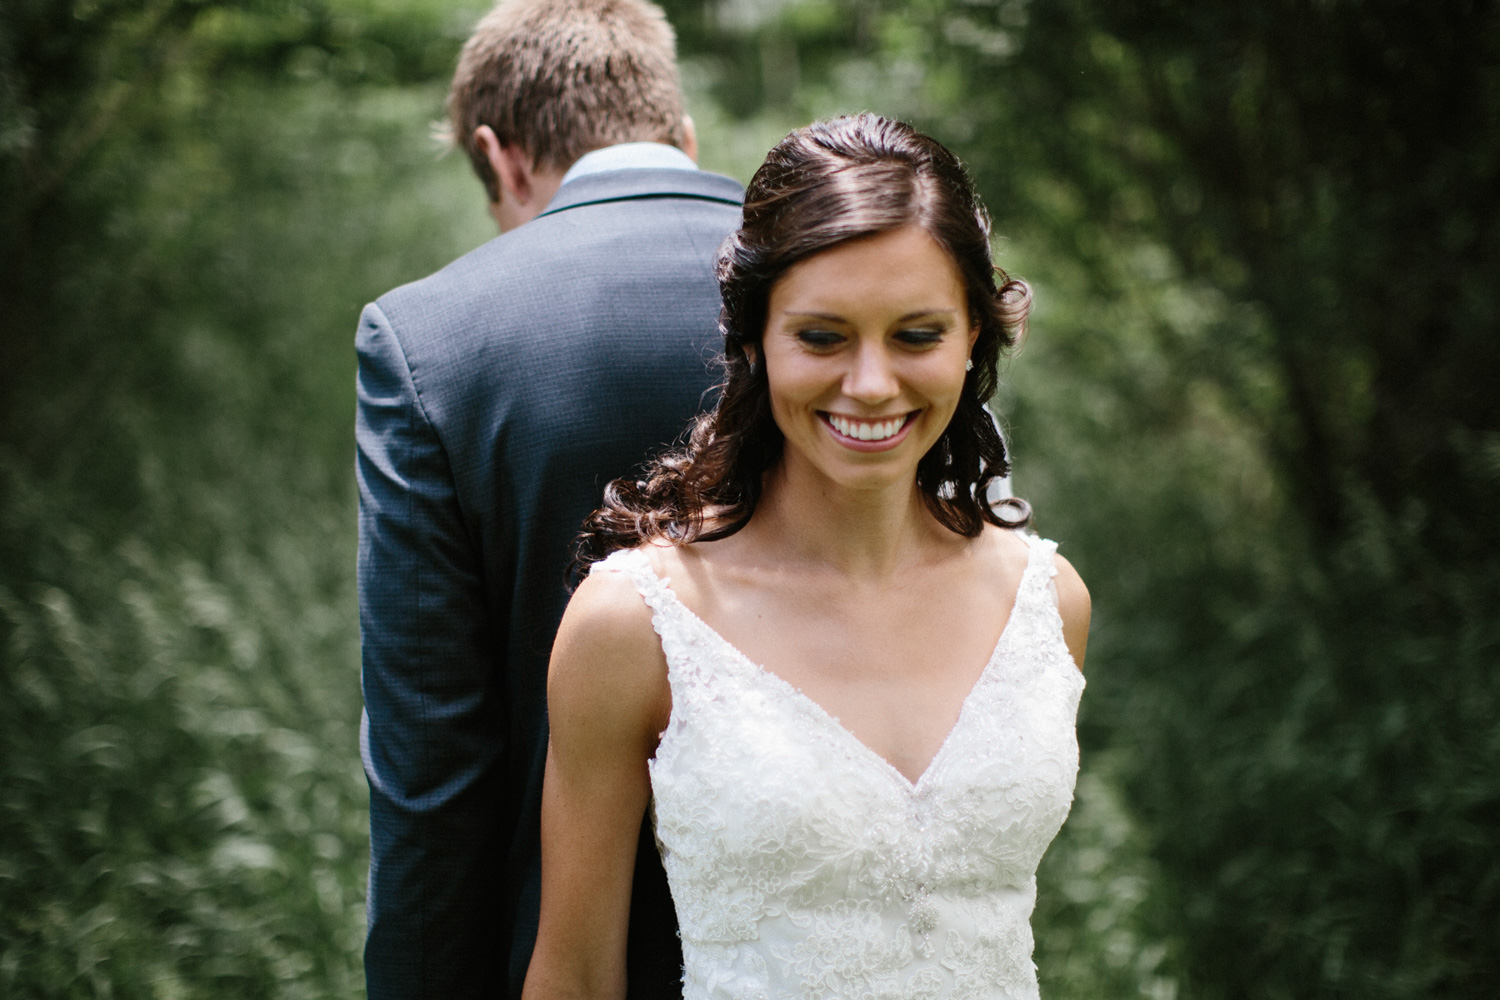 Outdoor_Wedding_SiouxFalls_MaryJoWegnerArboretum_Photographer_Calli&Jon_034.jpg